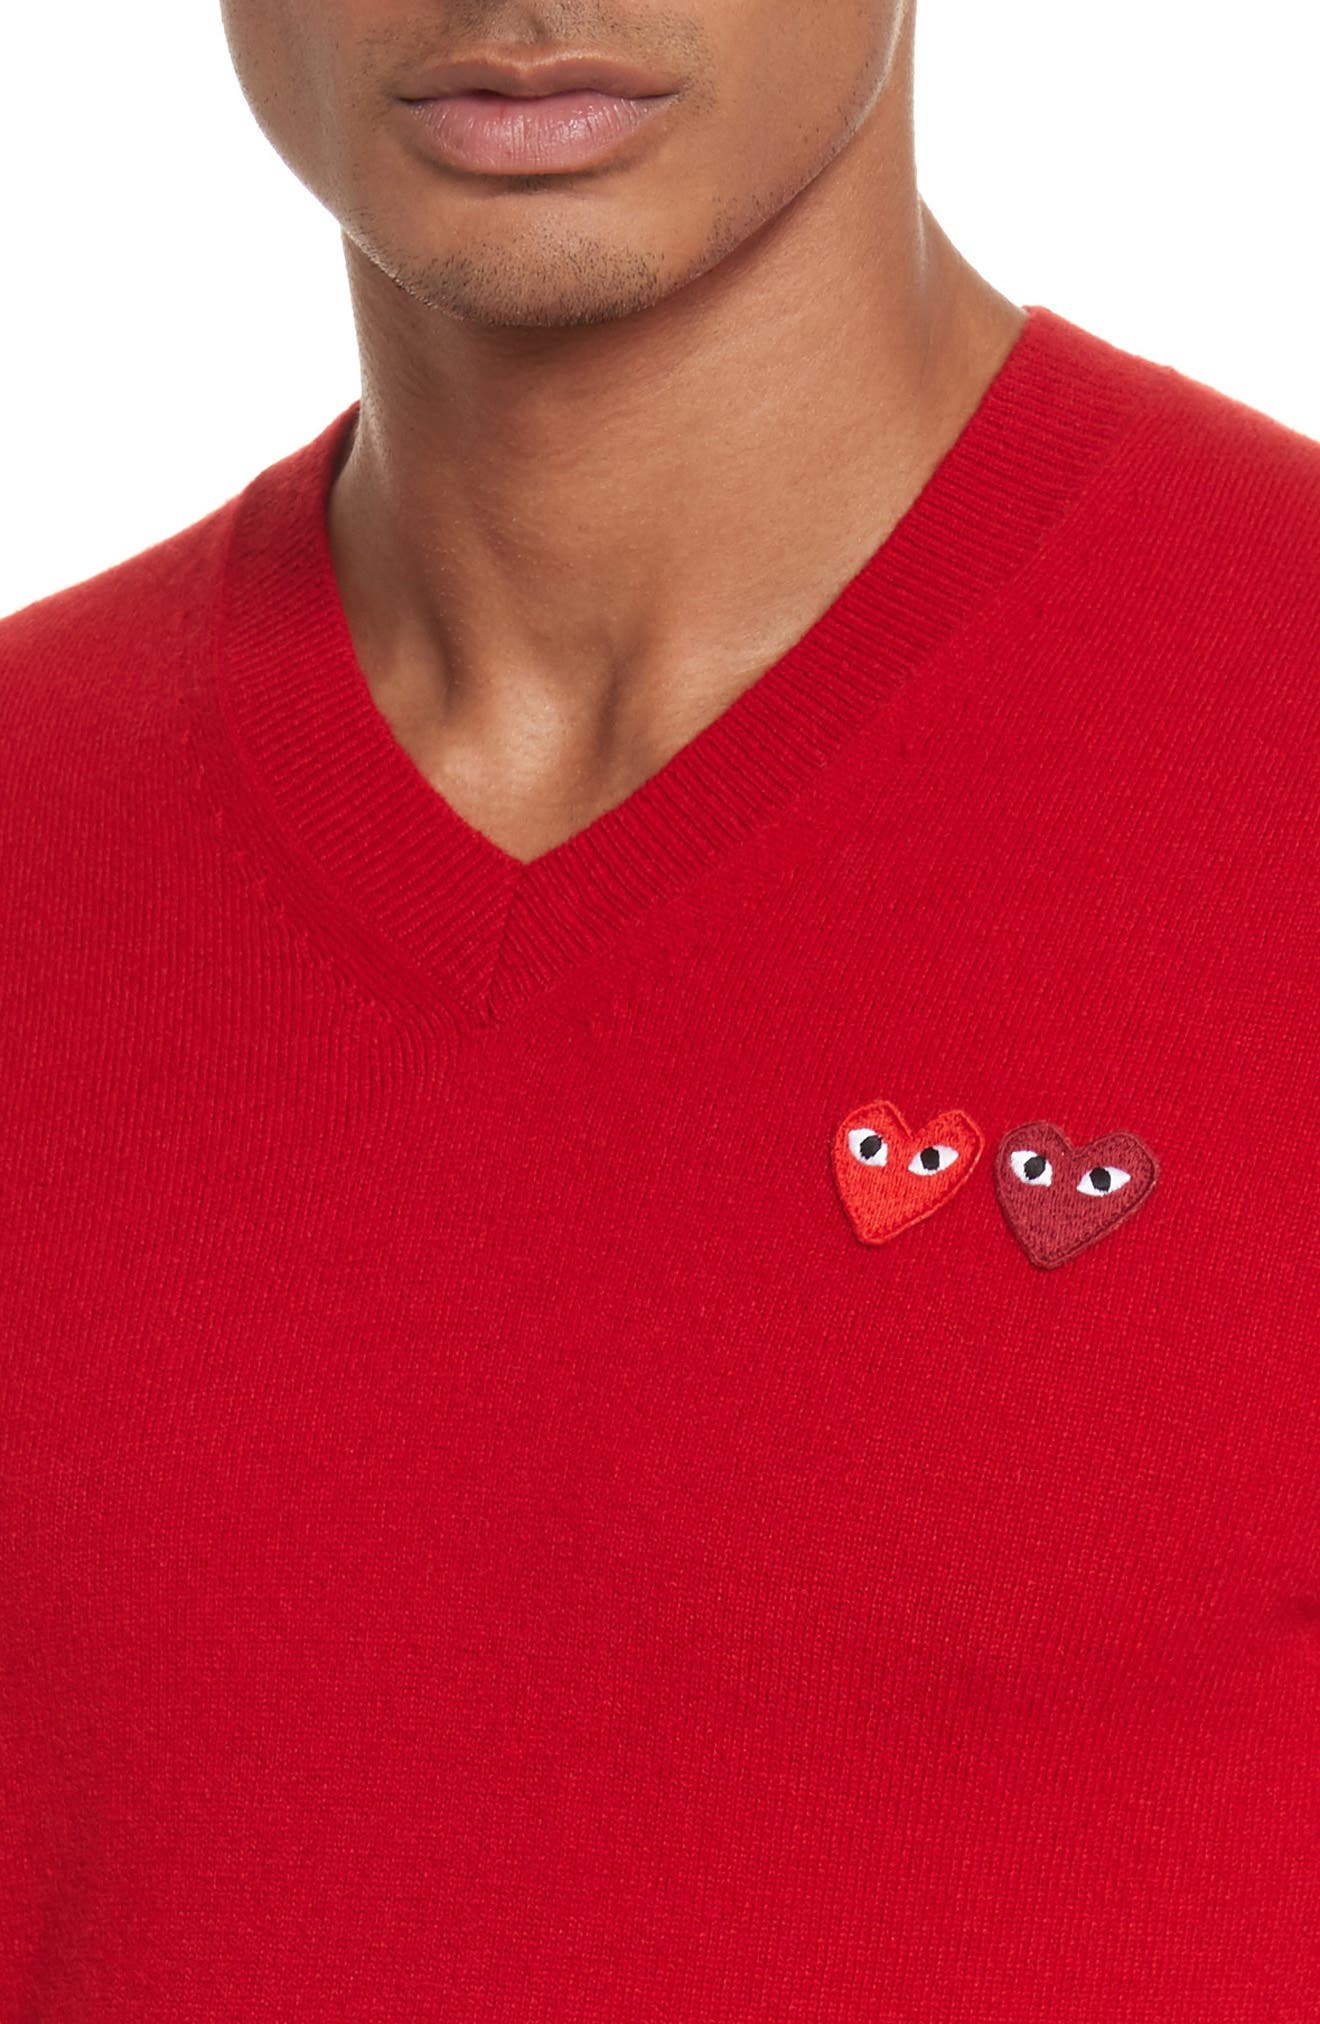 Comme des Garçons PLAY Wool Pullover,                             Alternate thumbnail 4, color,                             Red